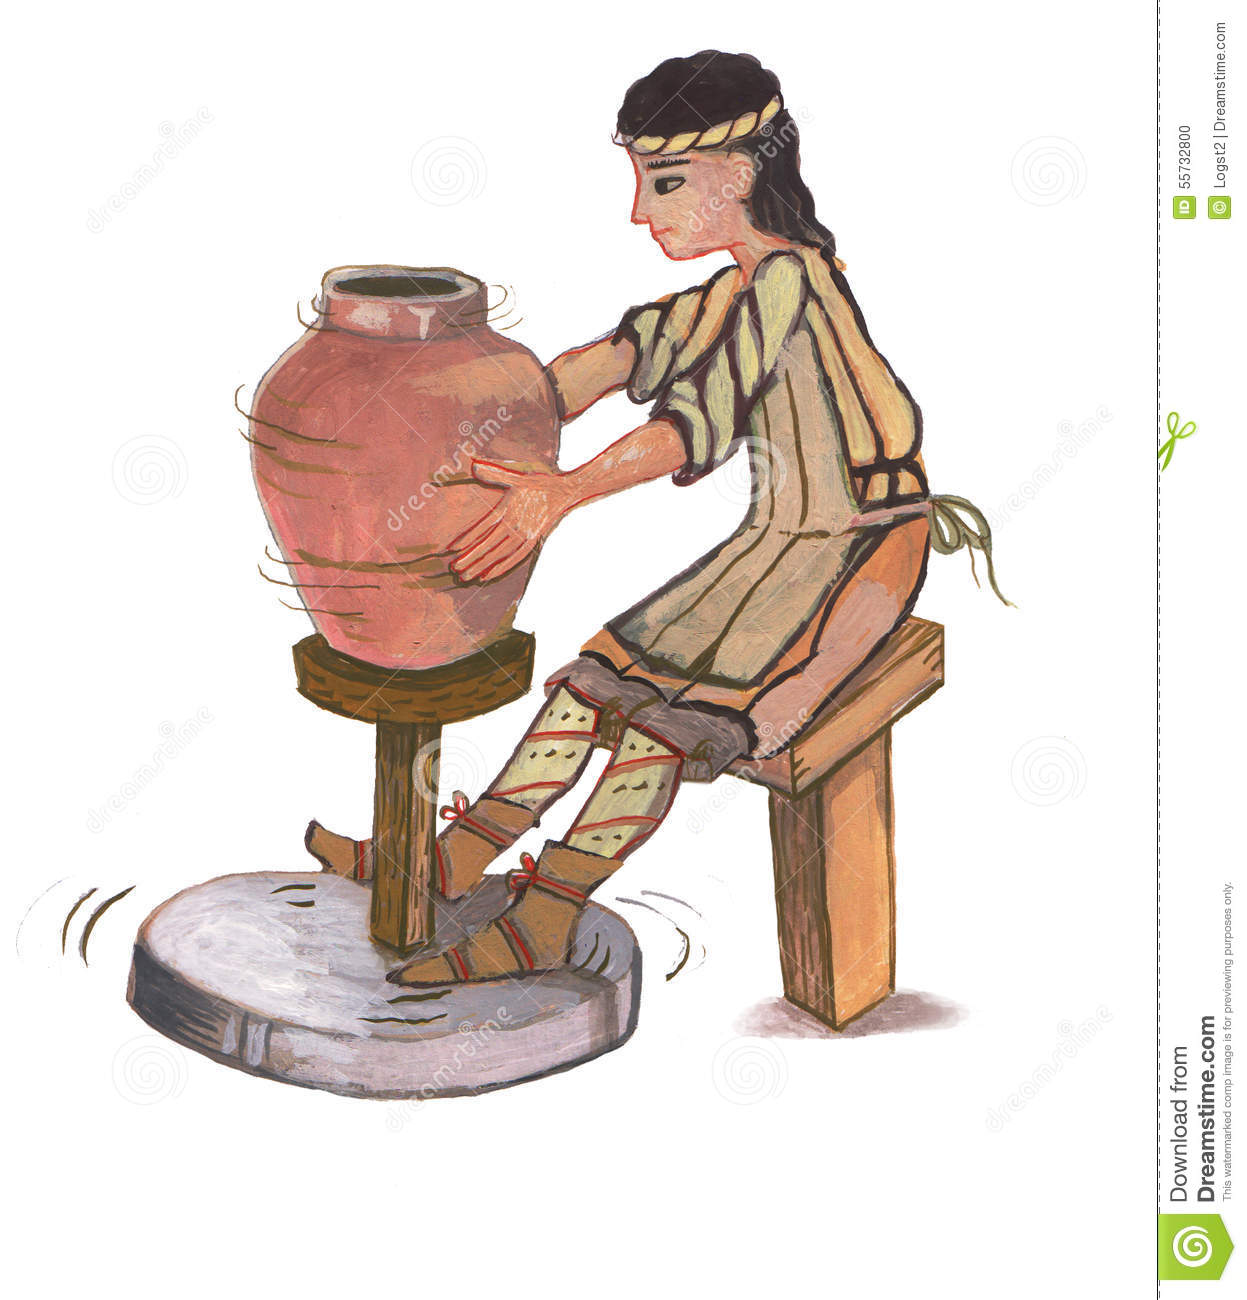 Medieval clipart villager. Villagers stock illustrations potter clipart freeuse